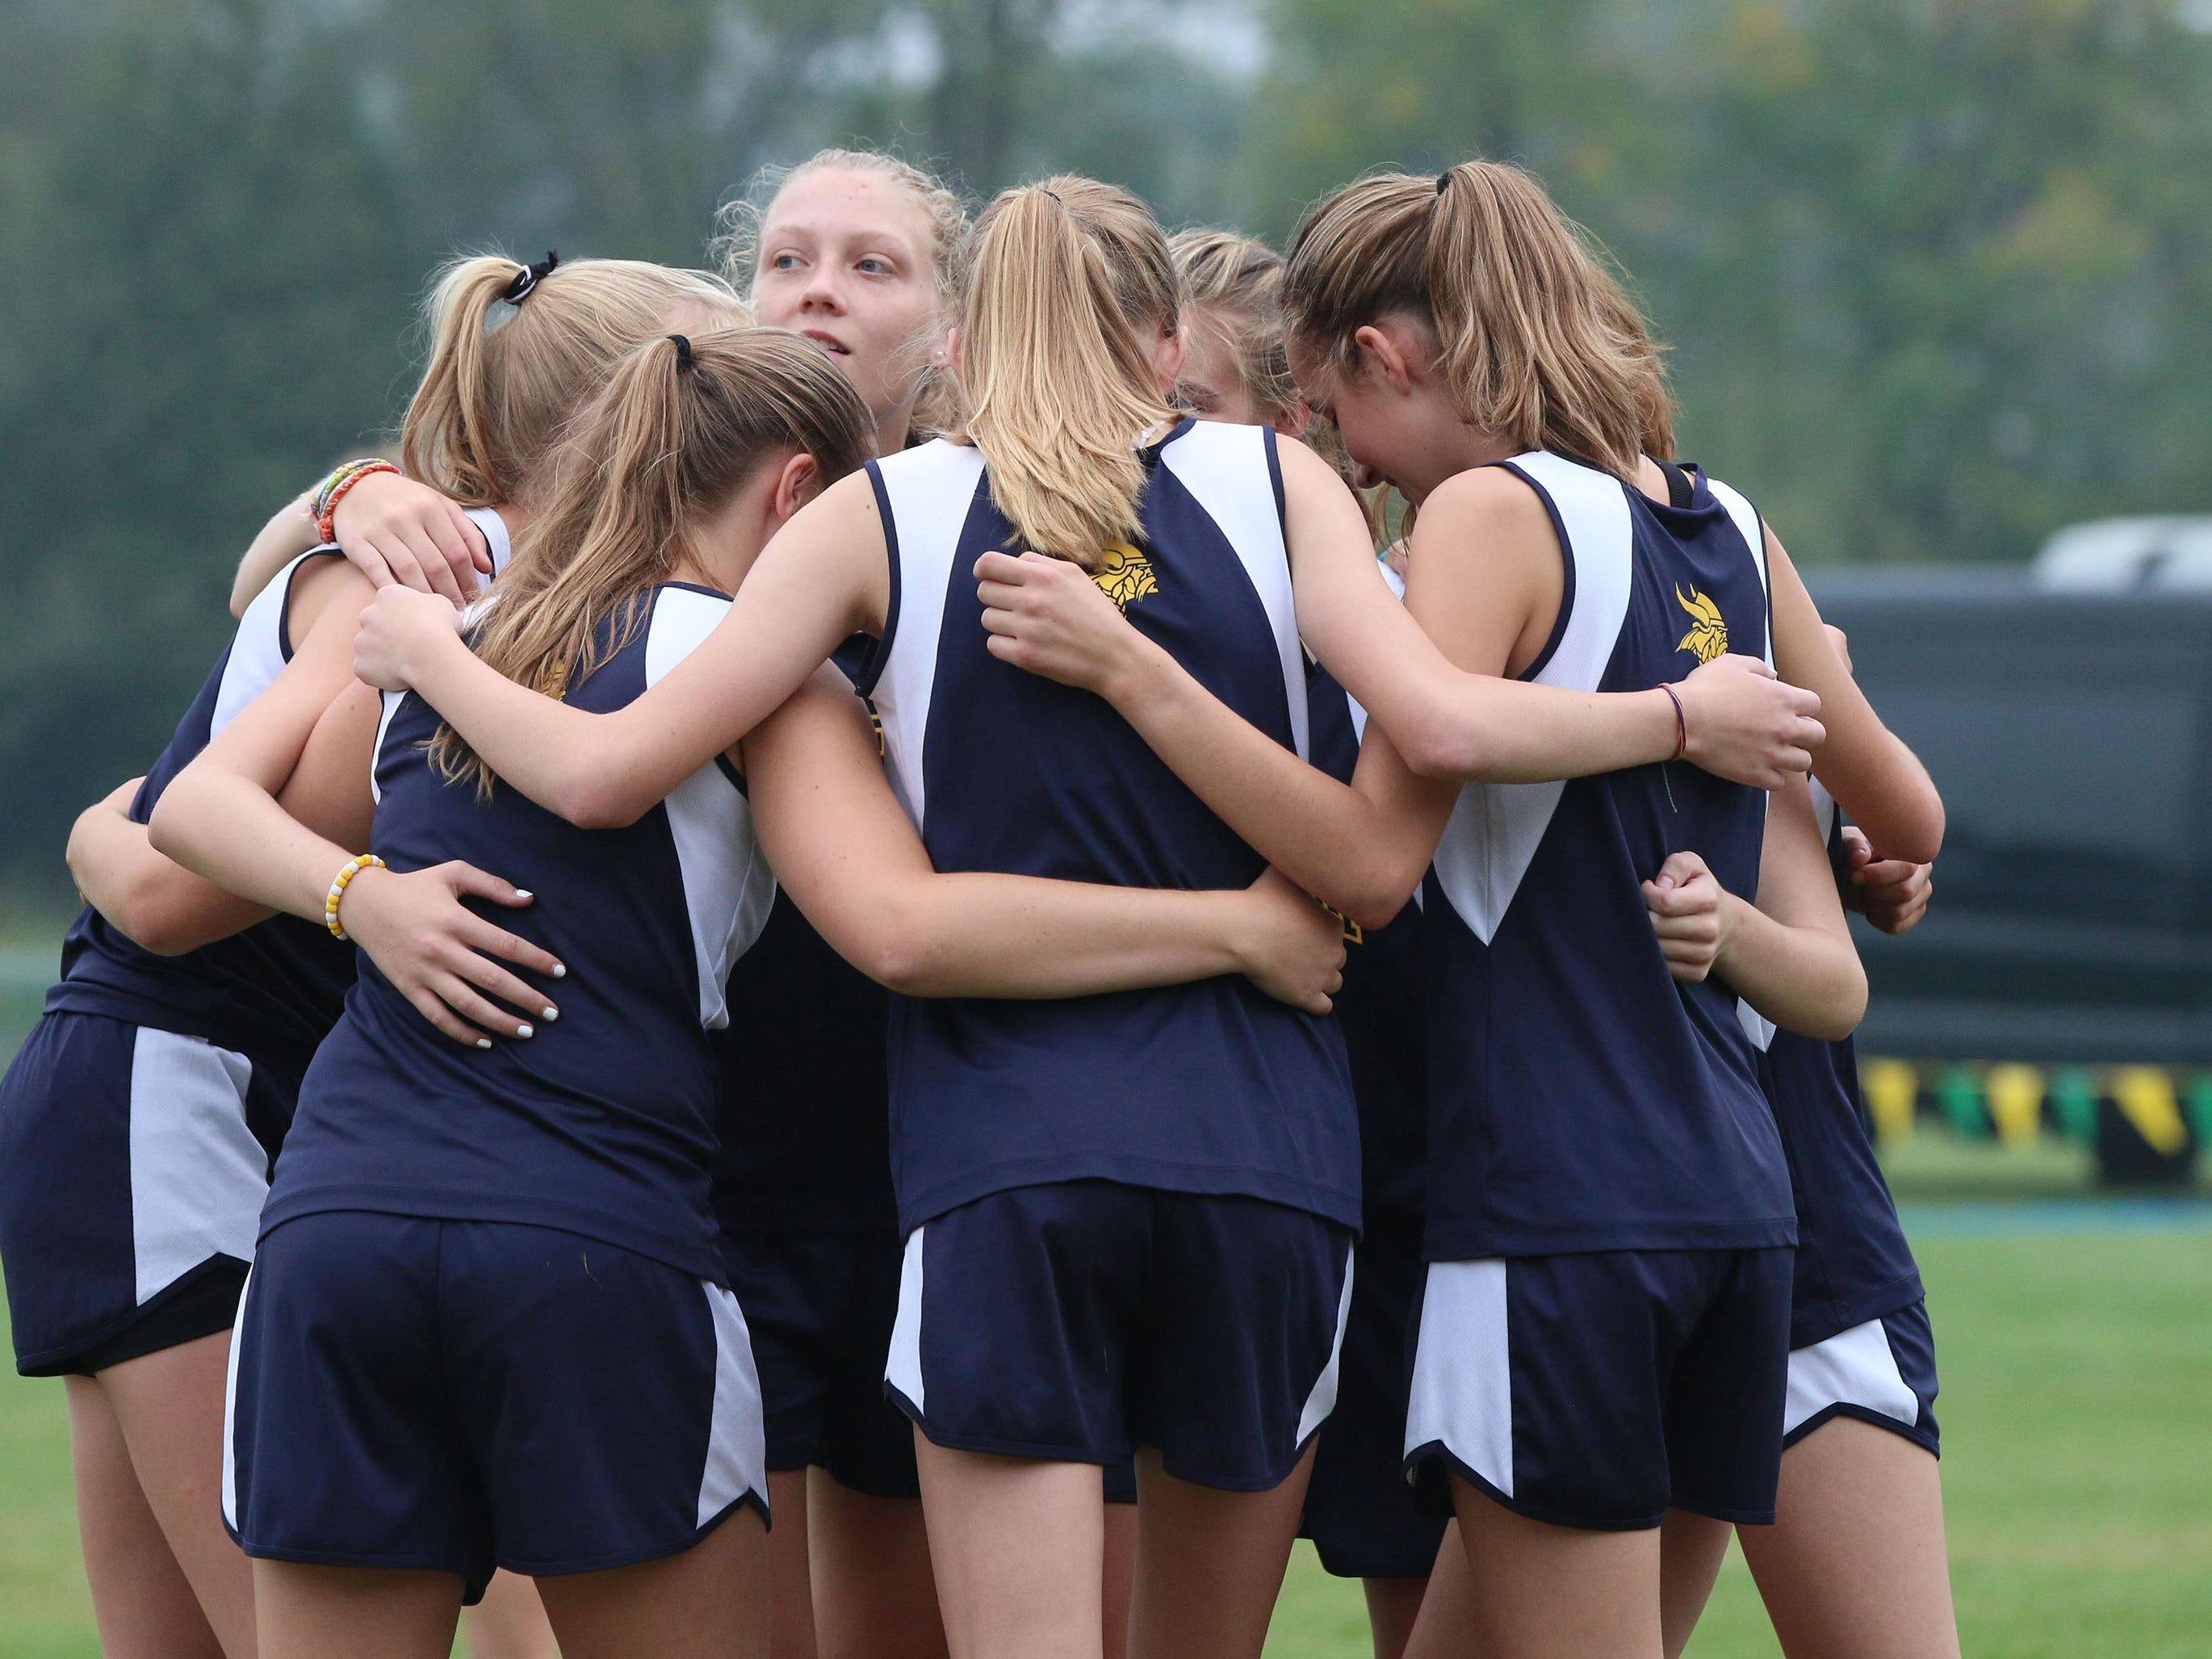 Sheboygan North girls huddle before the Sheboygan County Cross Country Invitational, Tuesday, September 25, 2018, in Sheboygan, Wis.